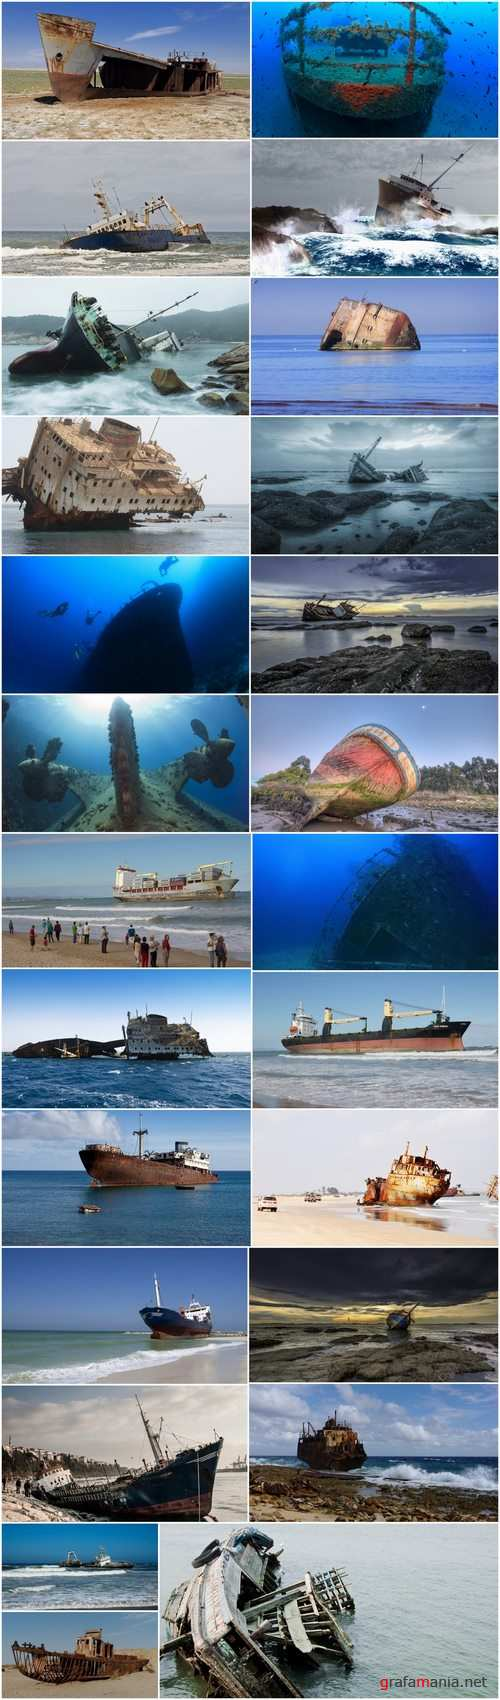 Wreck shipwreck rusty metal remains of sea boat 25 HQ Jpeg